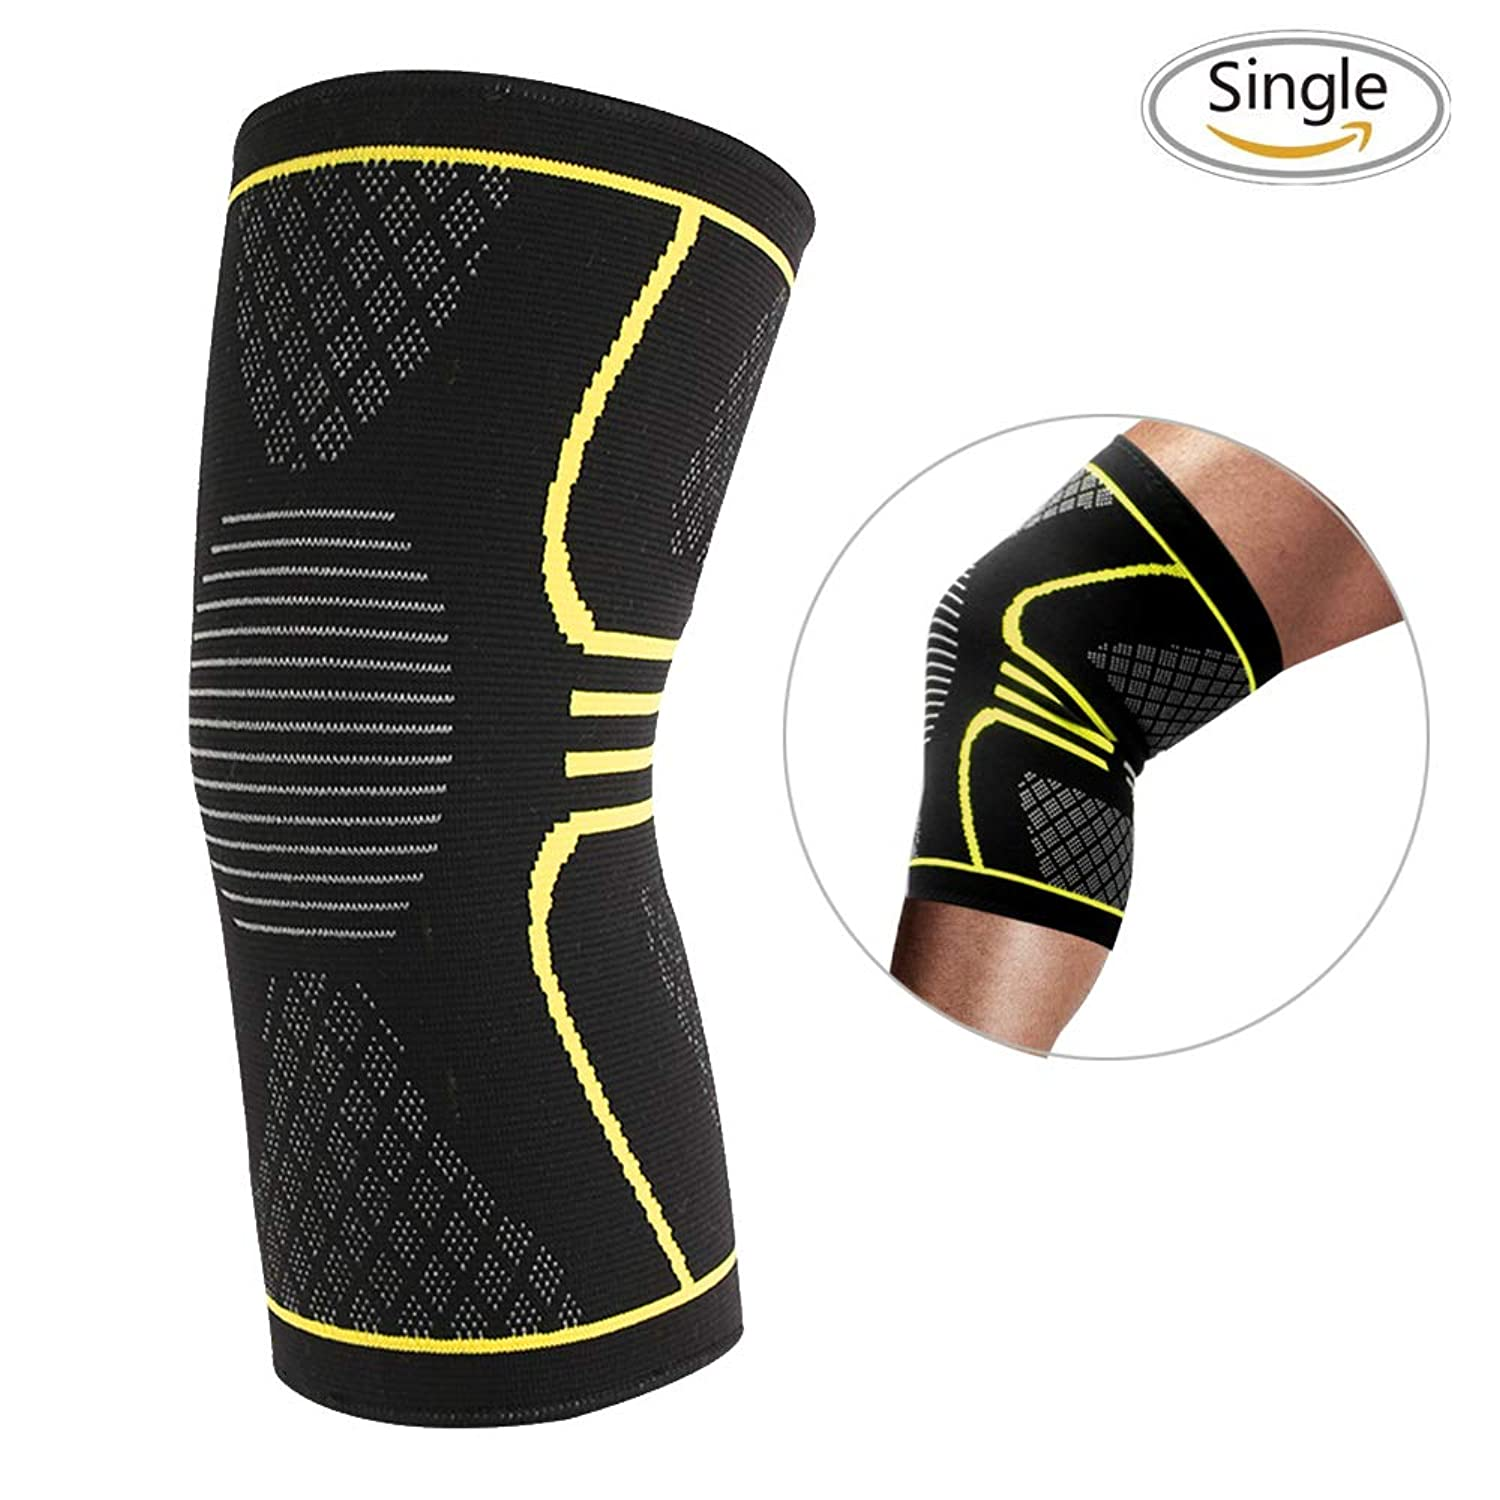 3D Knee Brace Knee Compression Sleeves,Soft Knee Pads Arthritis Knee Brace Athletic Padding Supplies Knee Sleeve Knee Cap for ACL,Pain Relief, Injury Recovery, Basketball and More Sports-Single dtipmo0098159